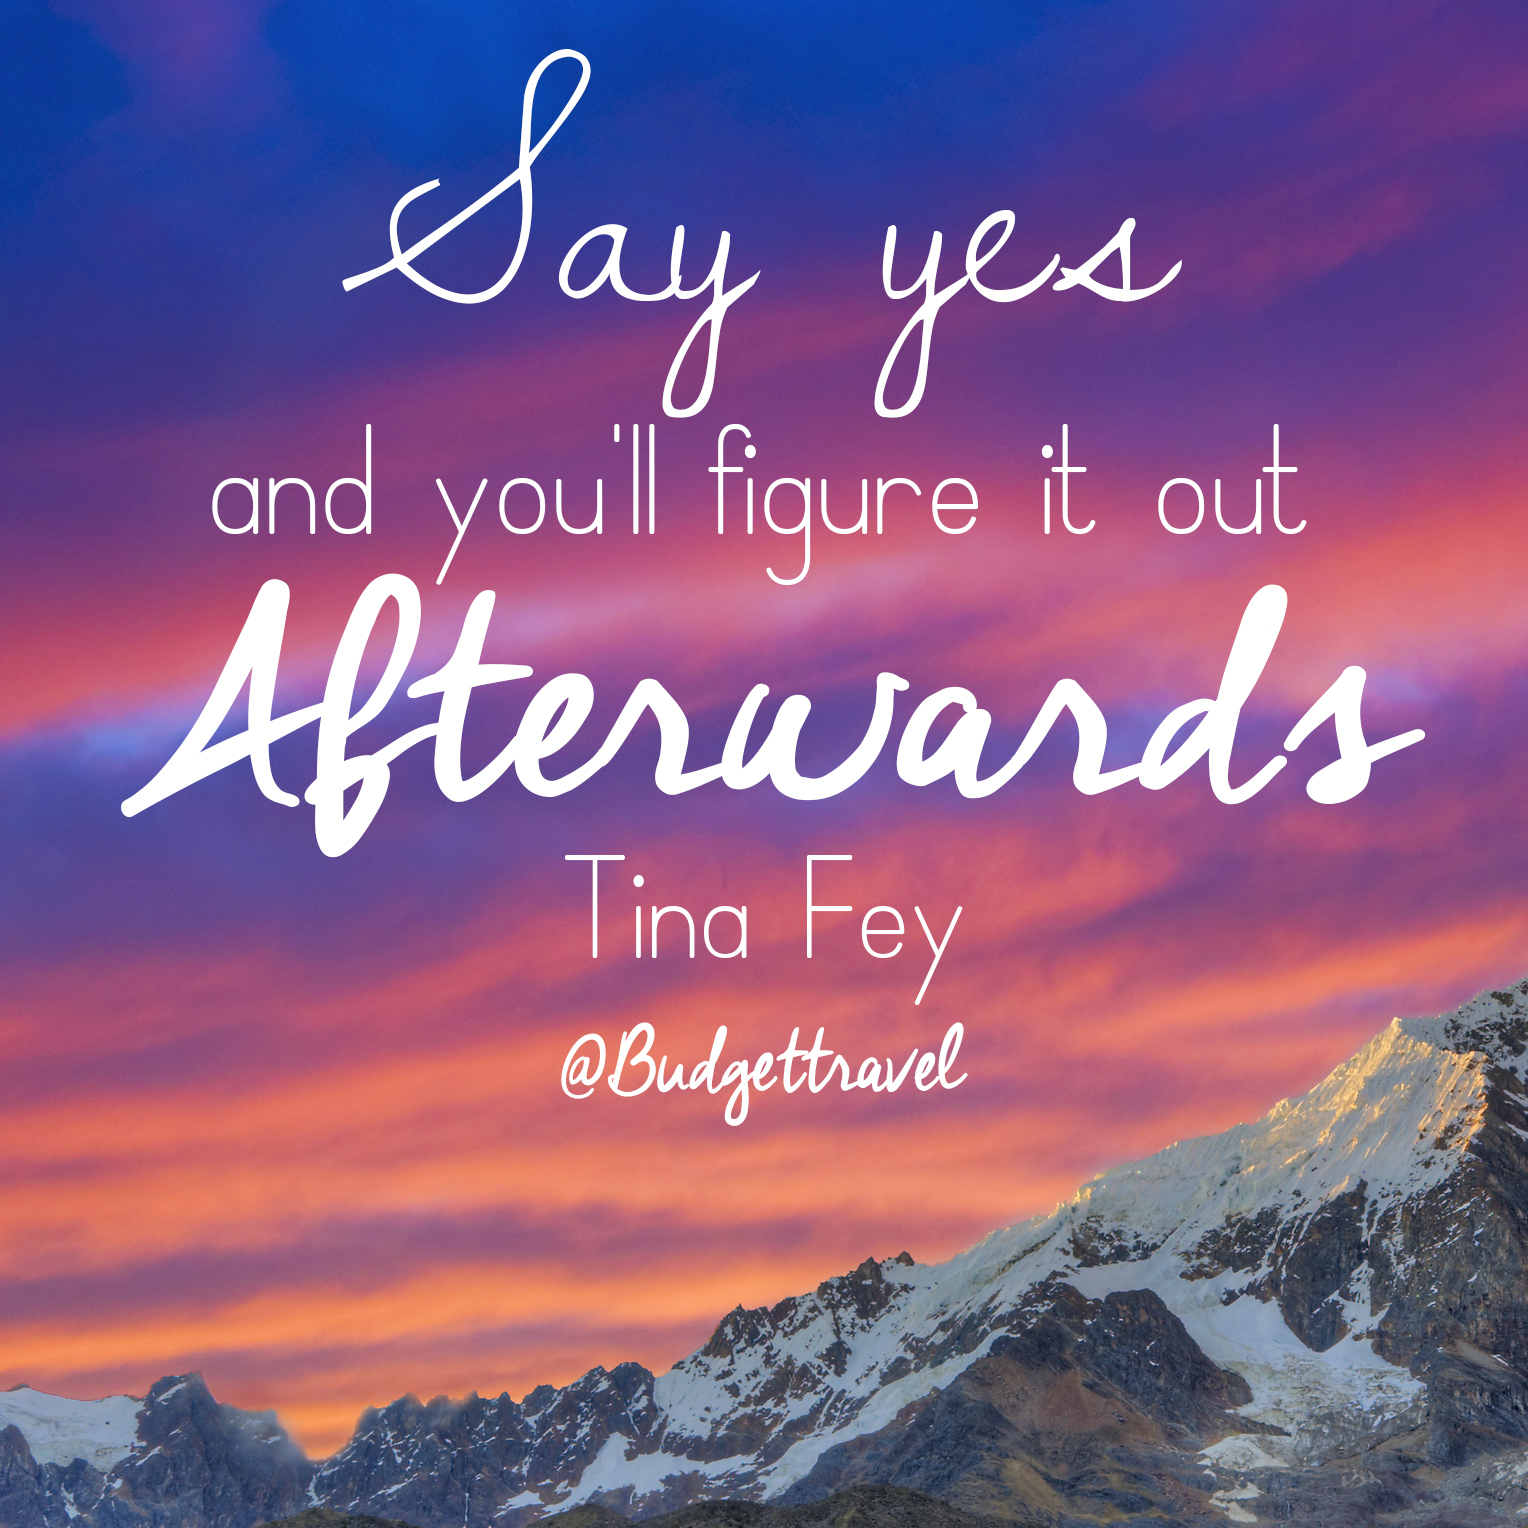 say-yes-and-youll-figure-it-out-travel-quote-472015-192019_original